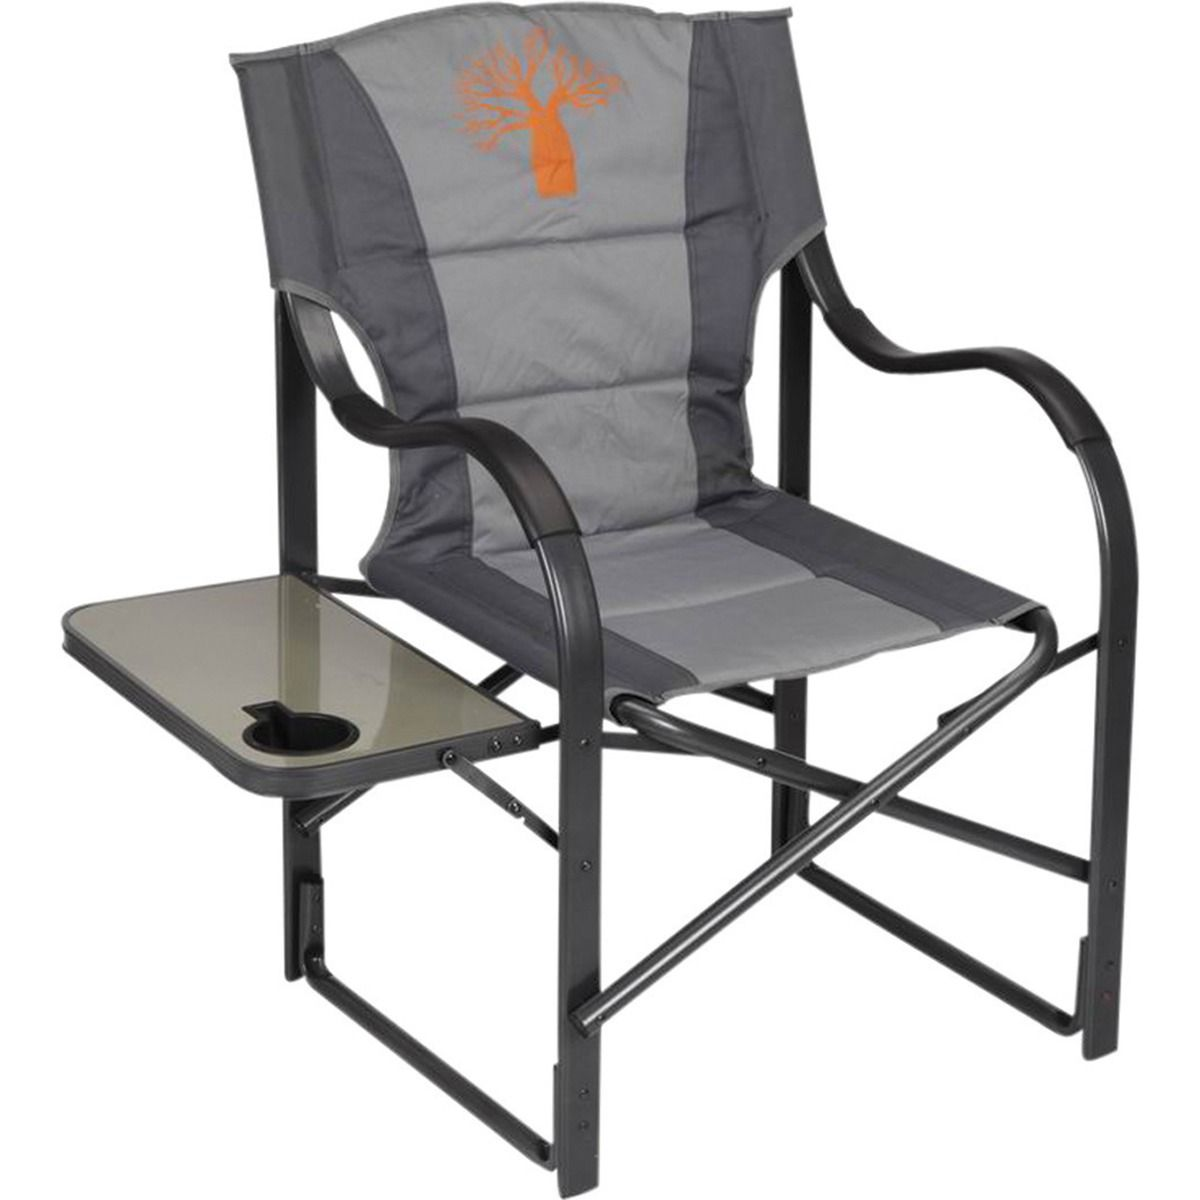 Camping Directors Chair Boab Deluxe Directors Chair Grey Alloy Frame 120kg